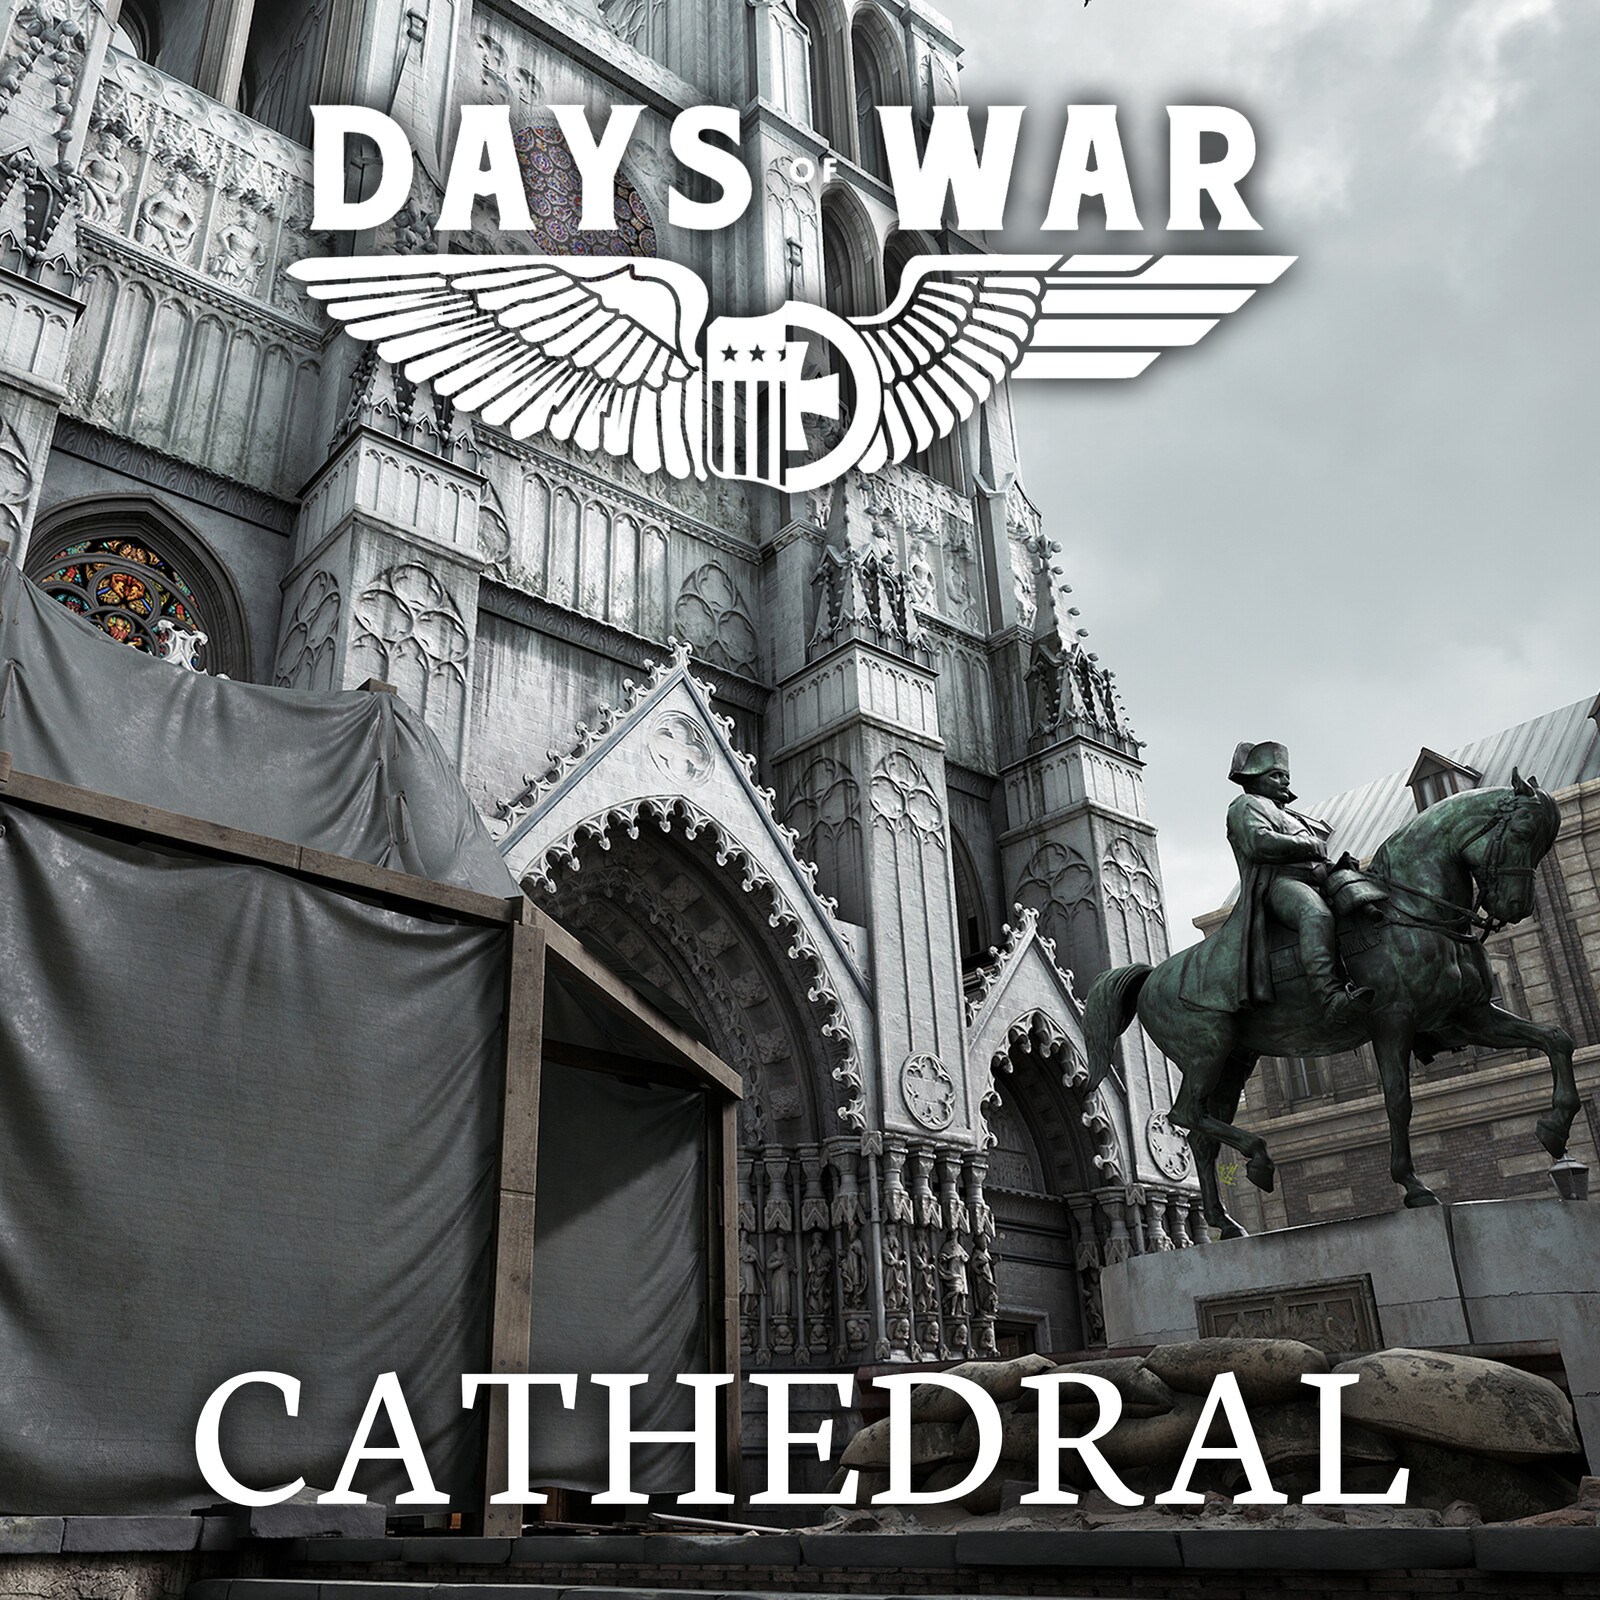 Days of War - Cathedral